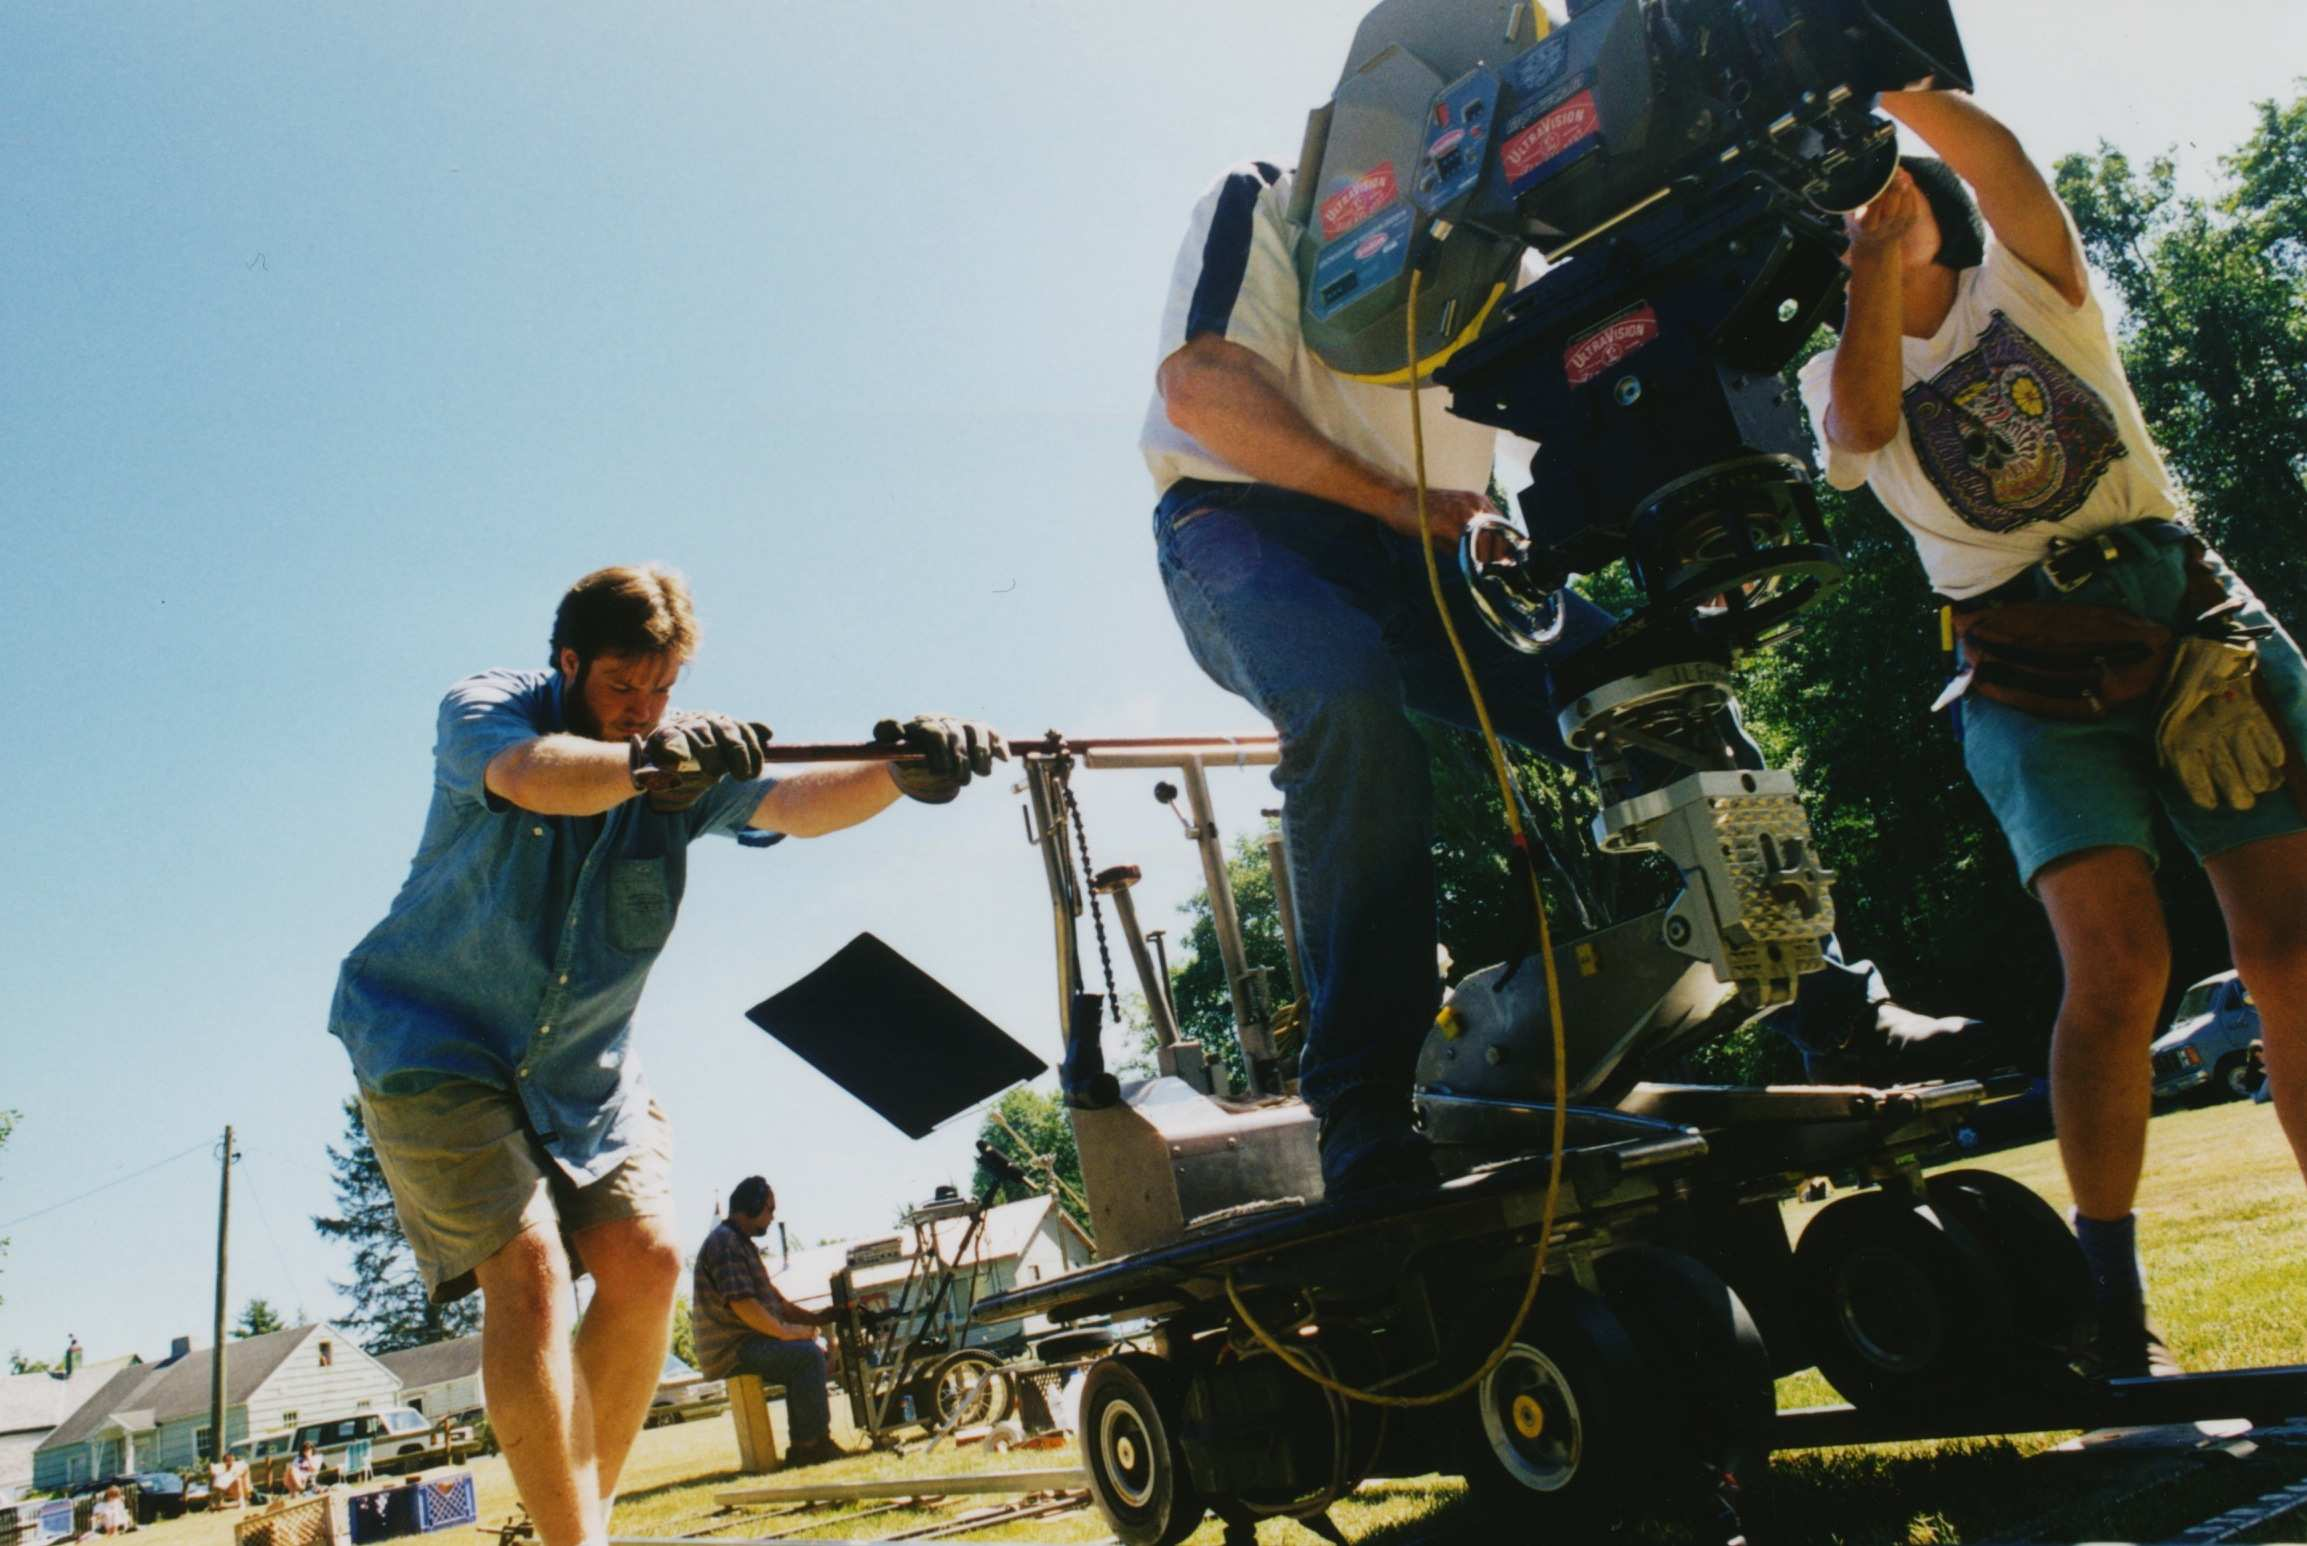 Dolly grip w track